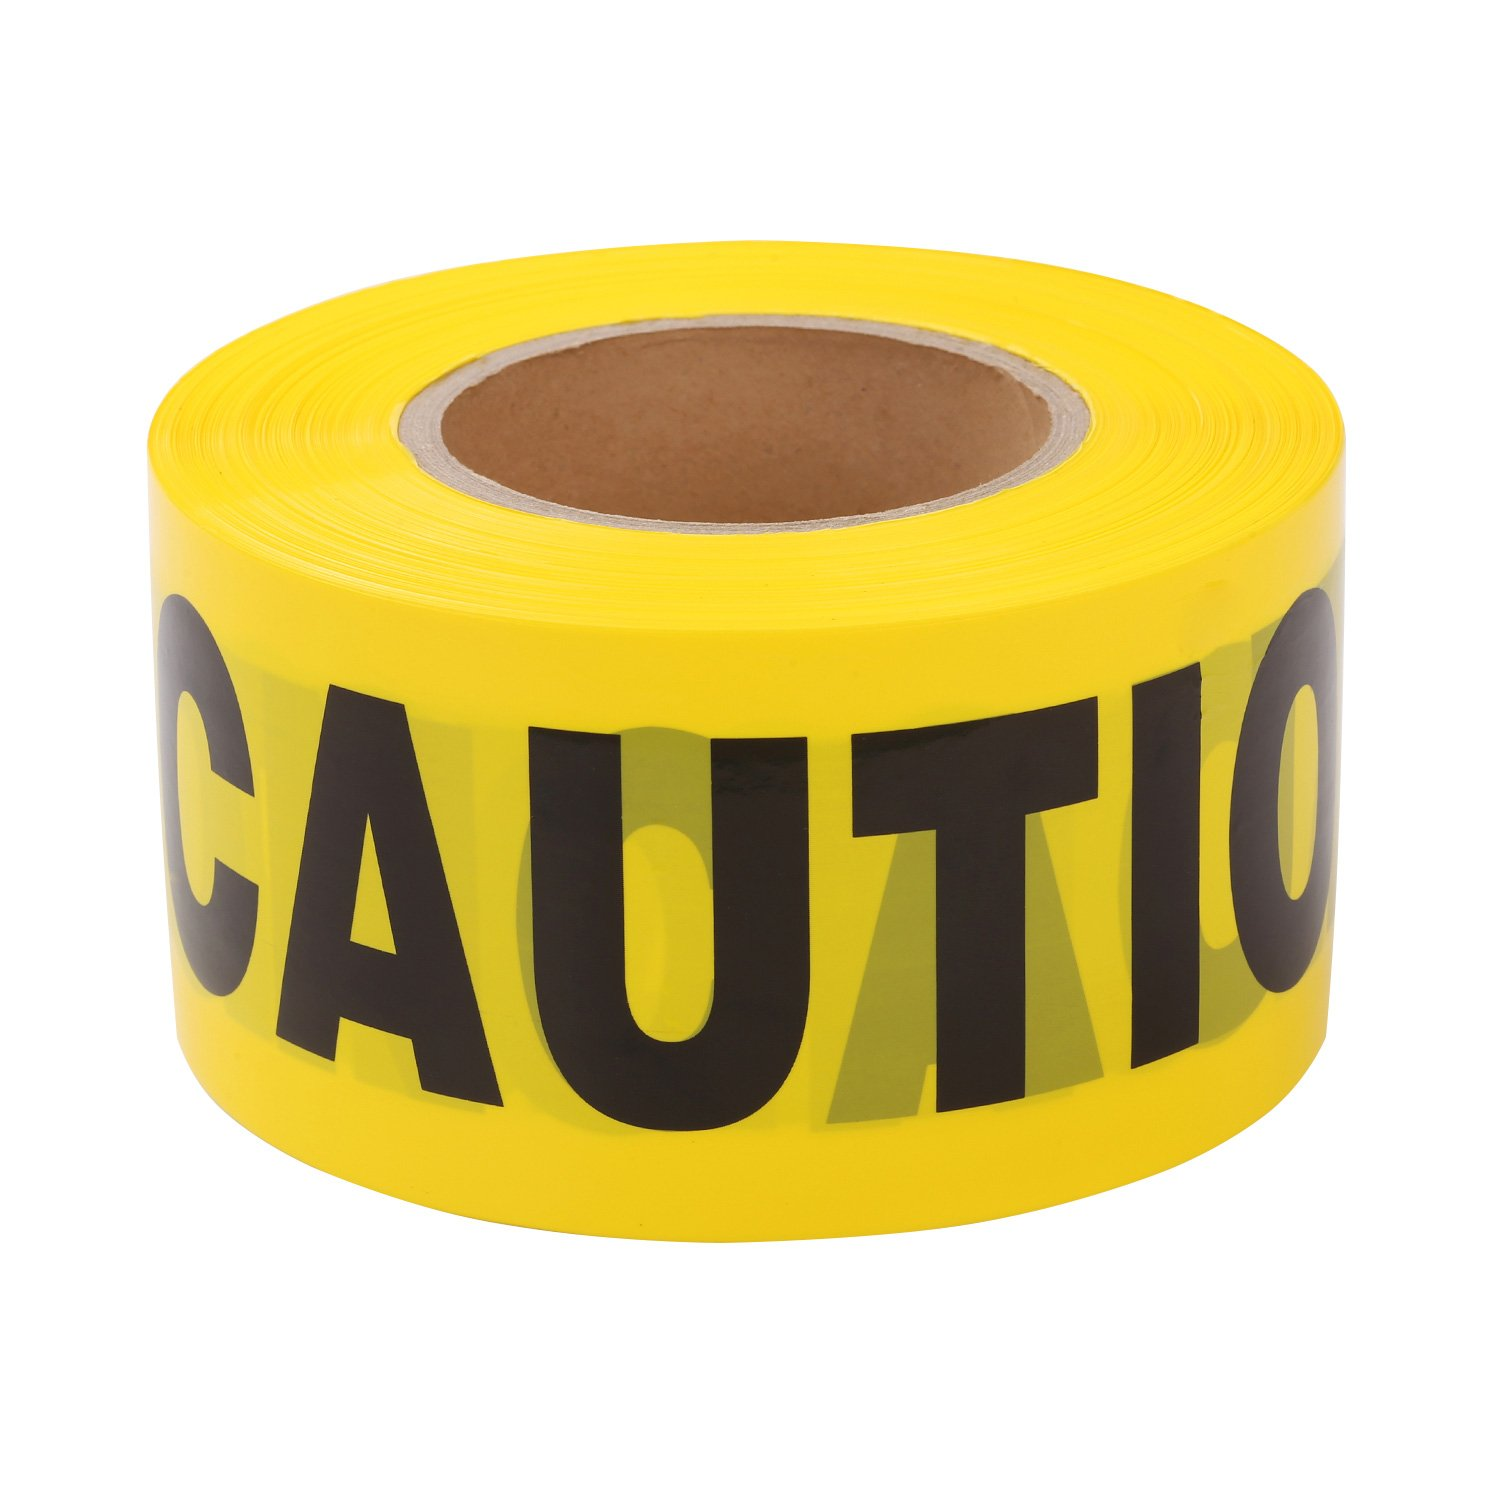 TopSoon Barricade CAUTION Tape Warning Tape Bright Yellow Barrier Tape 3-Inch by 1000-Feet Roll Non-Adhesive